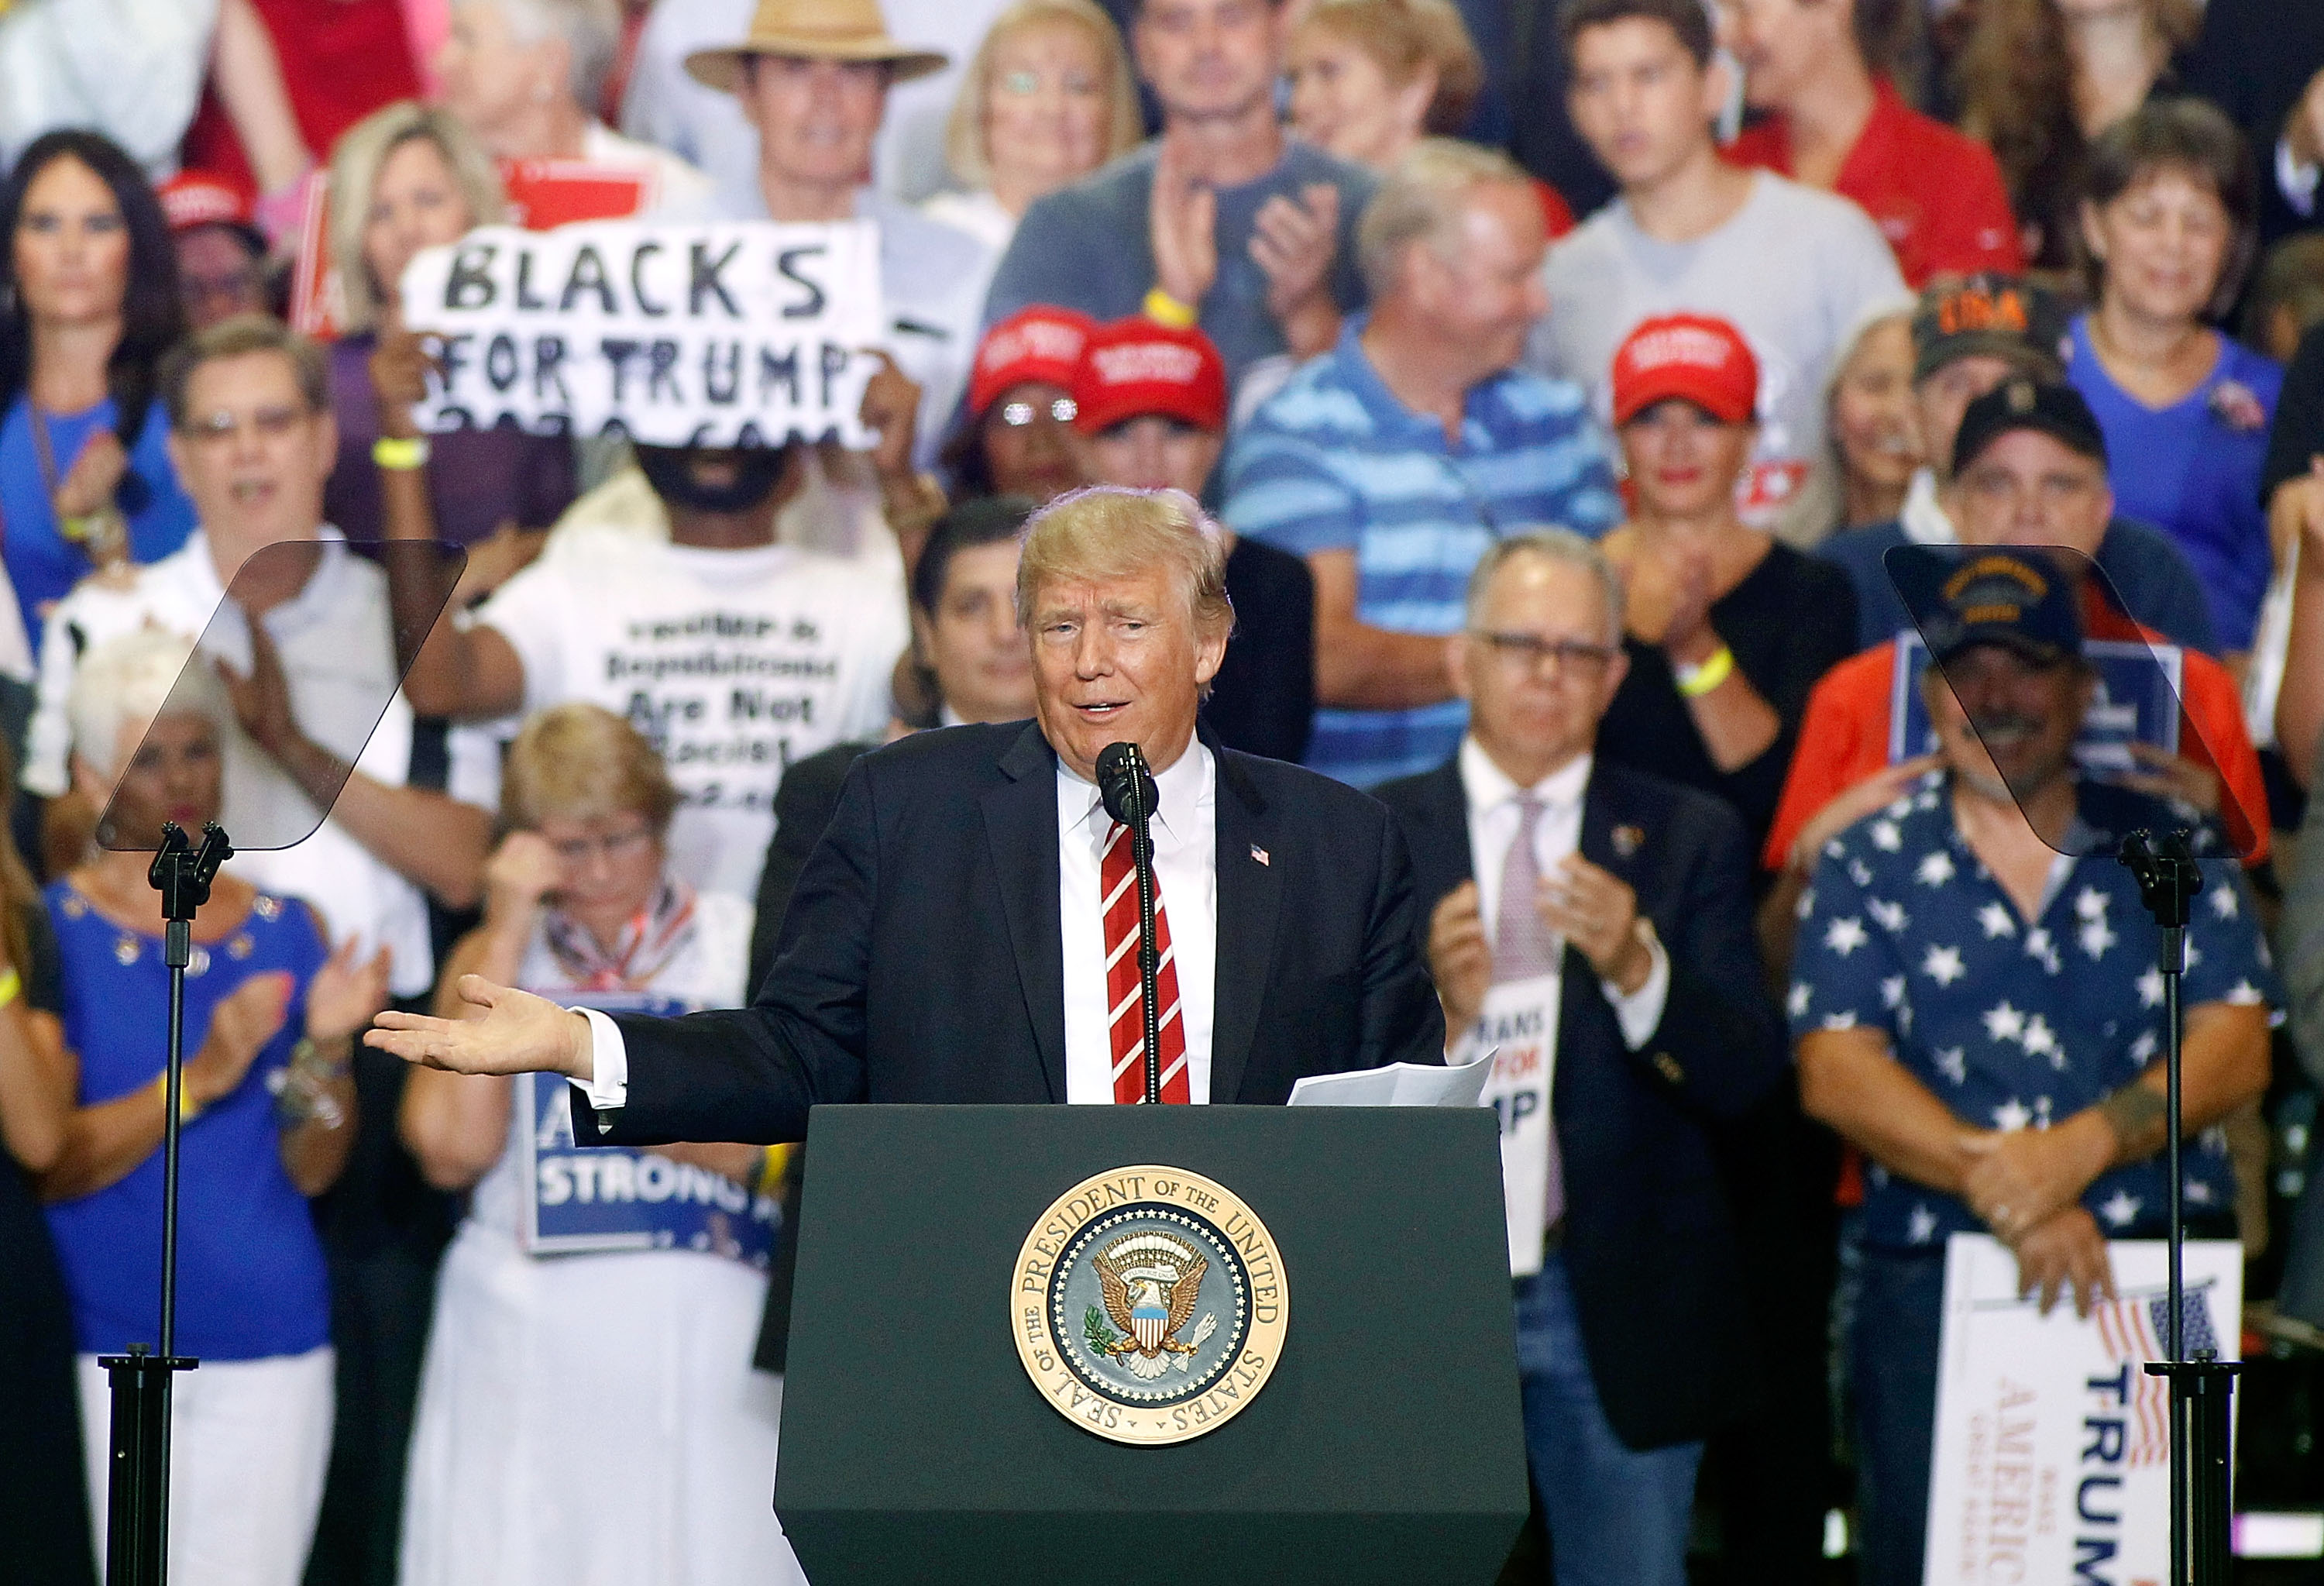 U.S. President Donald Trump gestures to the crowd as he speaks to supporters at the Phoenix Convention Center during a rally on August 22, 2017 in Phoenix, Arizona.